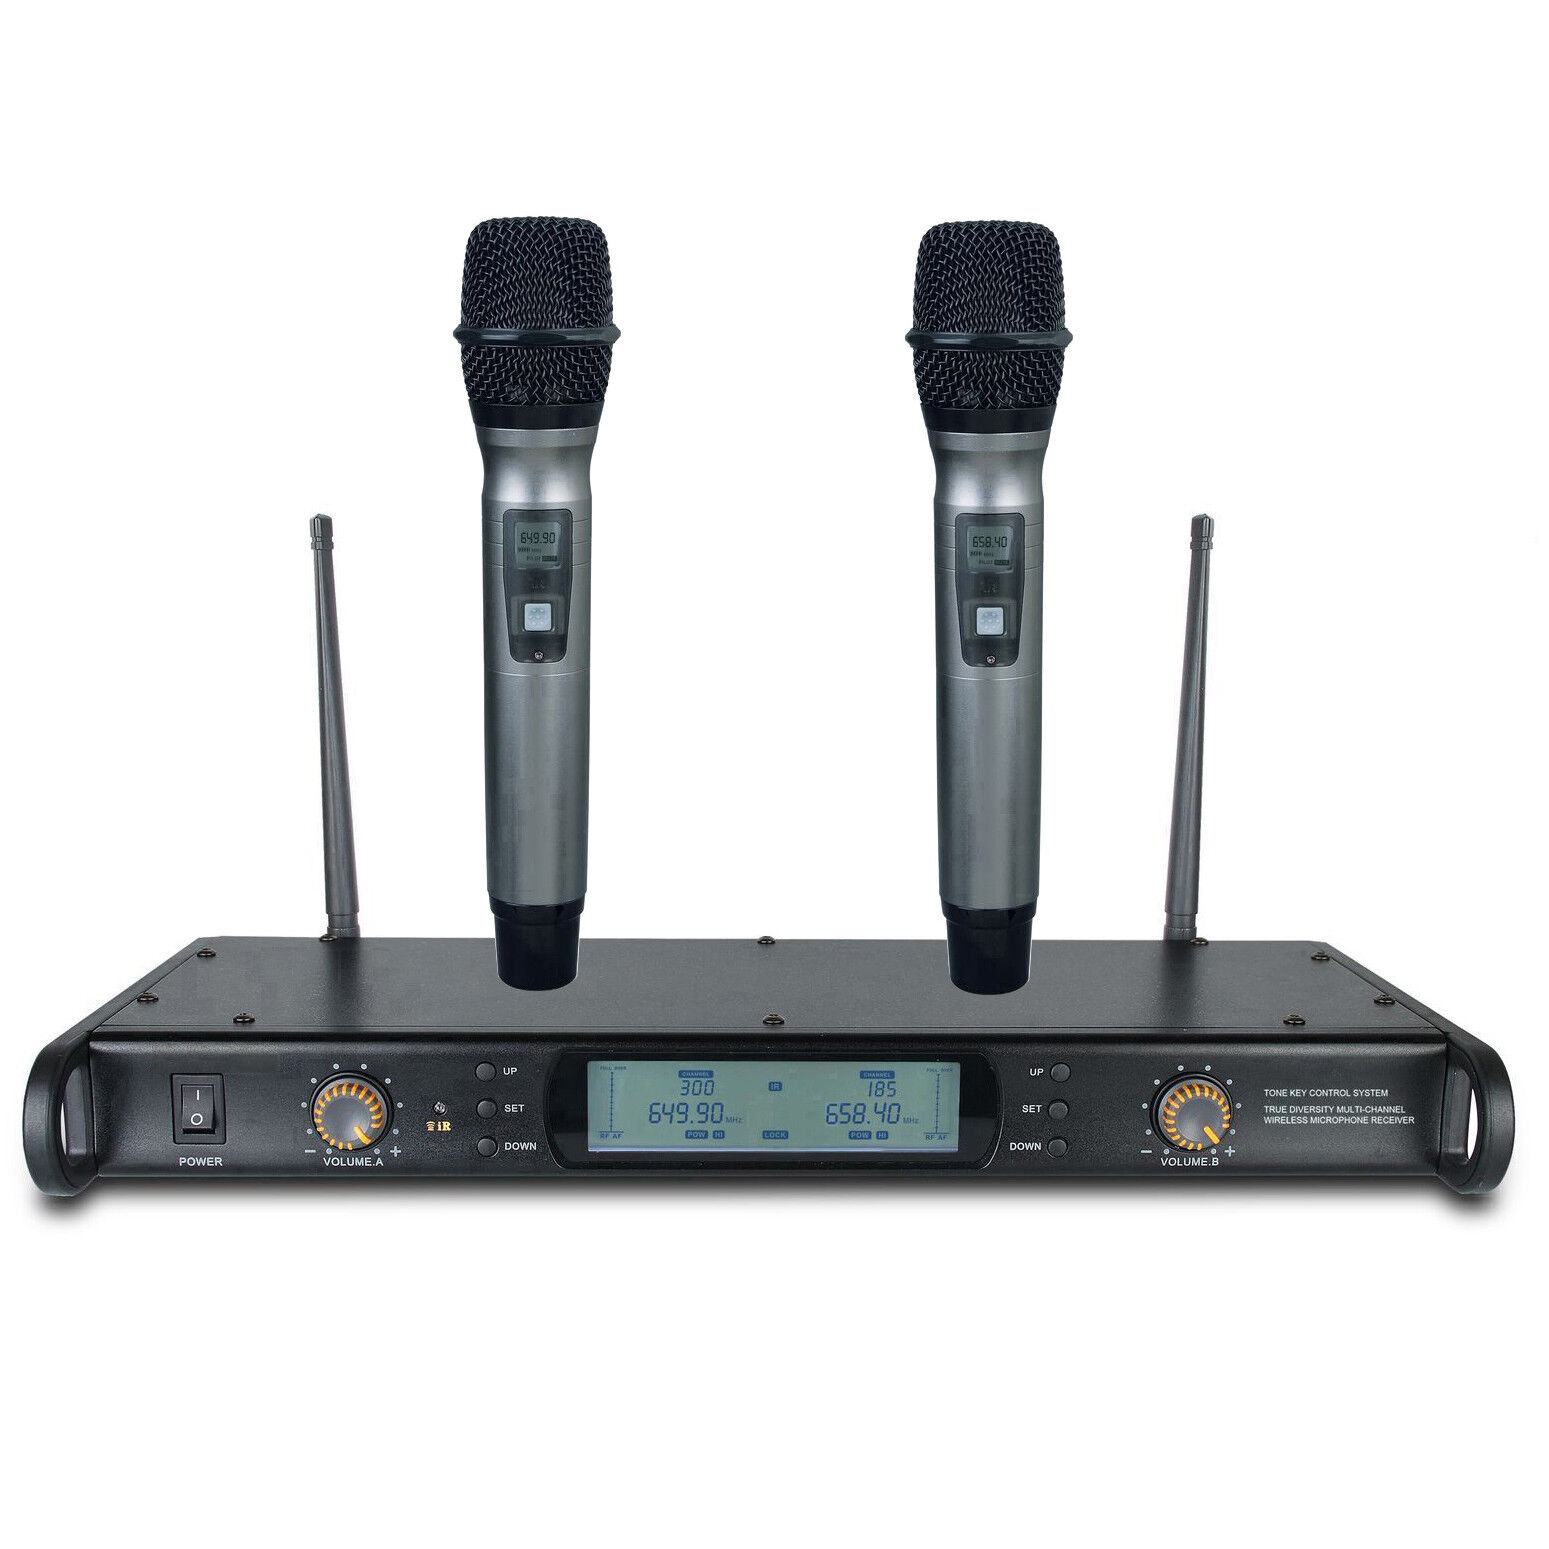 Dual Microphone Wireless UHF Professional Presentation Cordless Microphone Rack